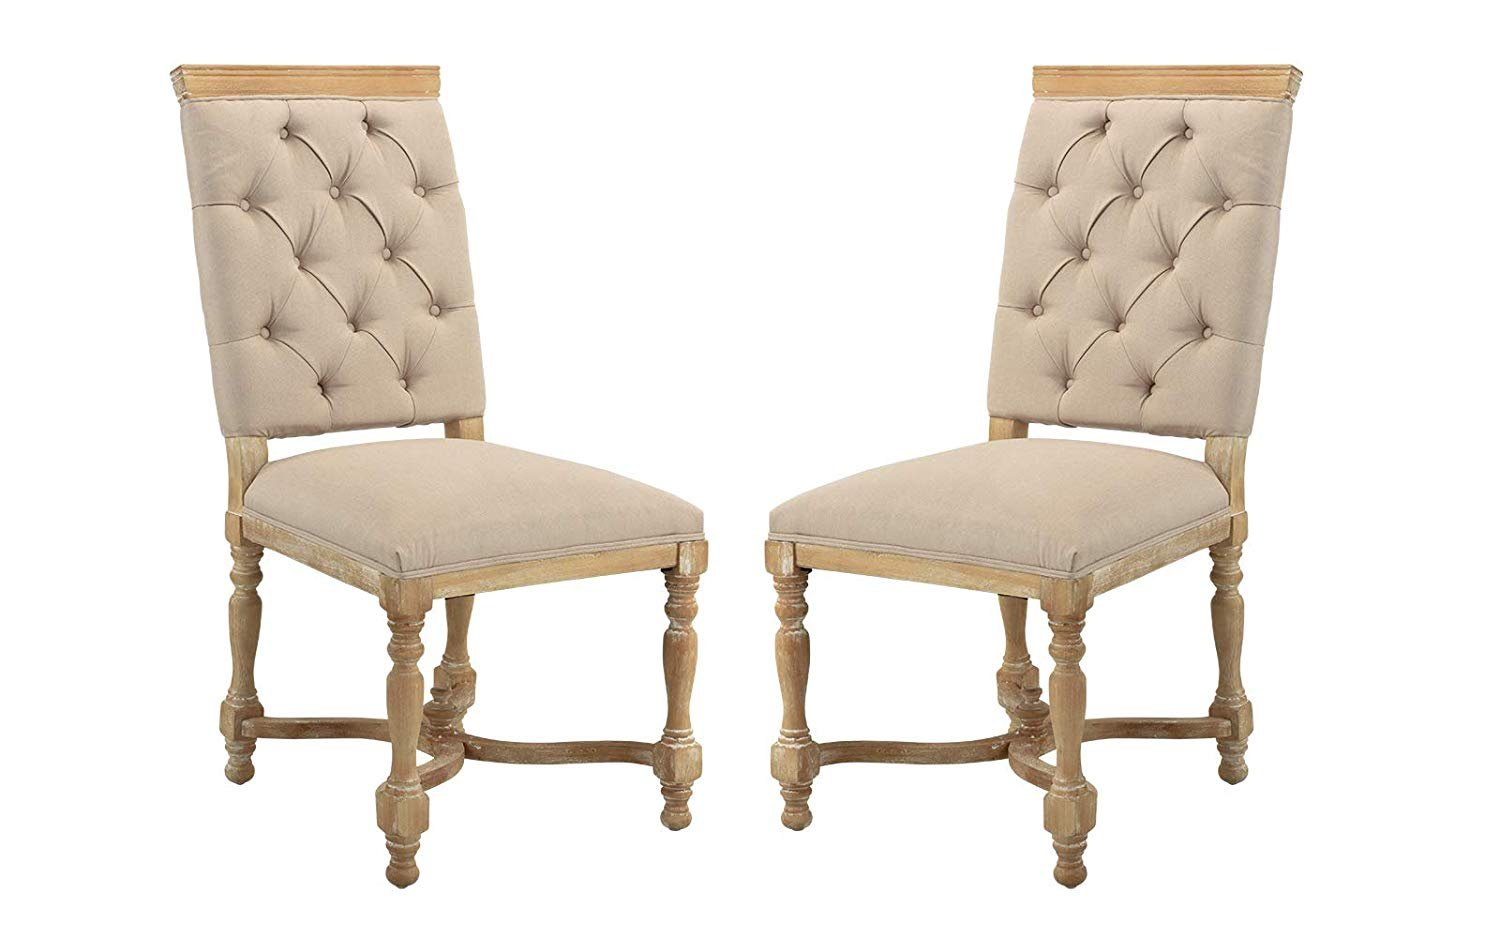 Dining Room Chair Fabric Classic 2 Piece Set Tufted Fabric Dining Room Chairs Antic Beige